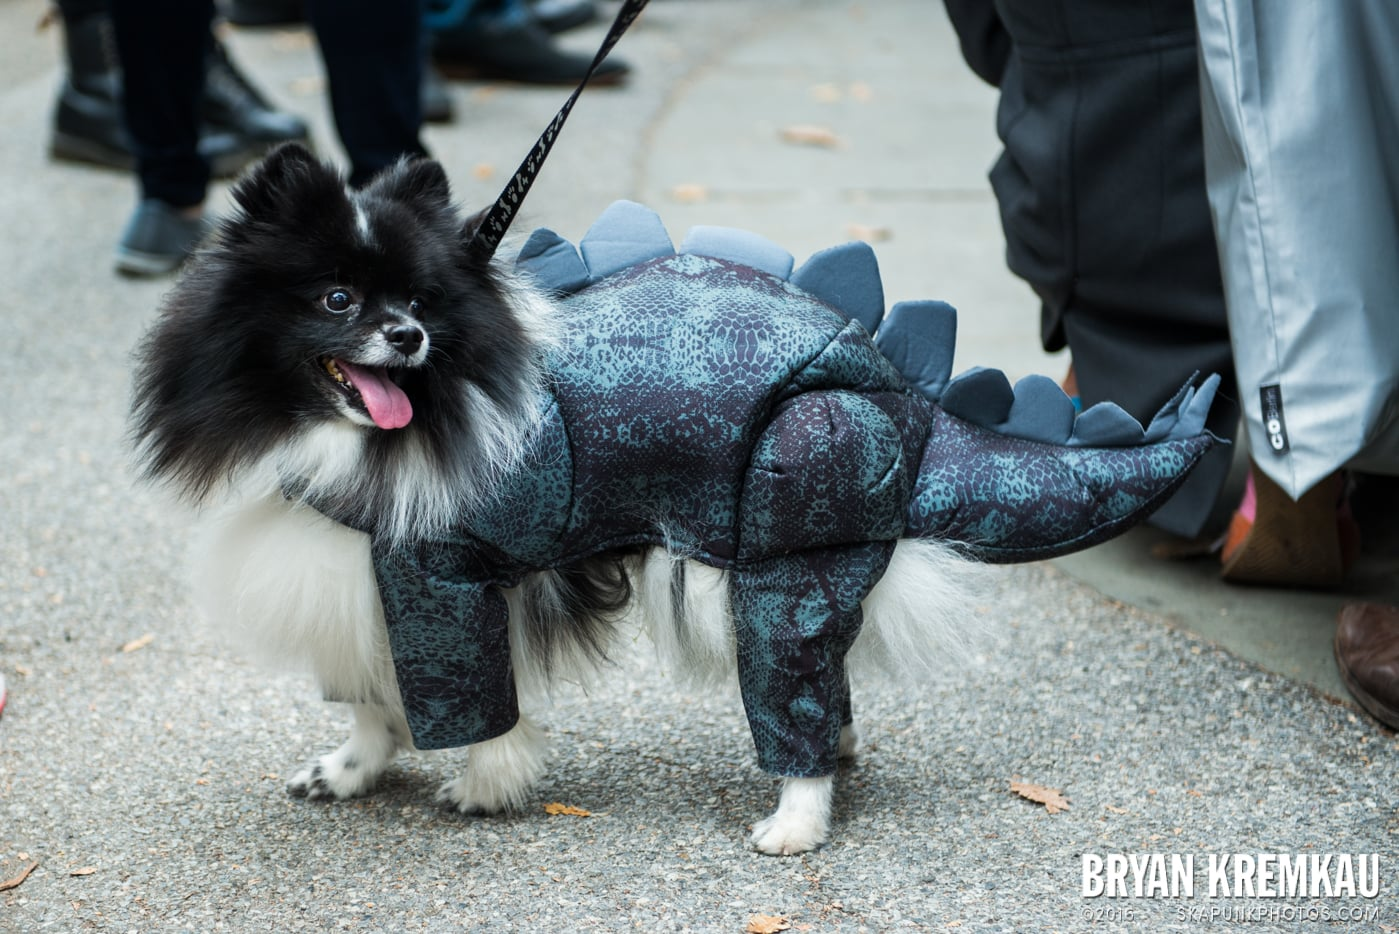 Tompkins Square Halloween Dog Parade 2015 @ Tompkins Square Park, NYC – 10.24.15 (7)